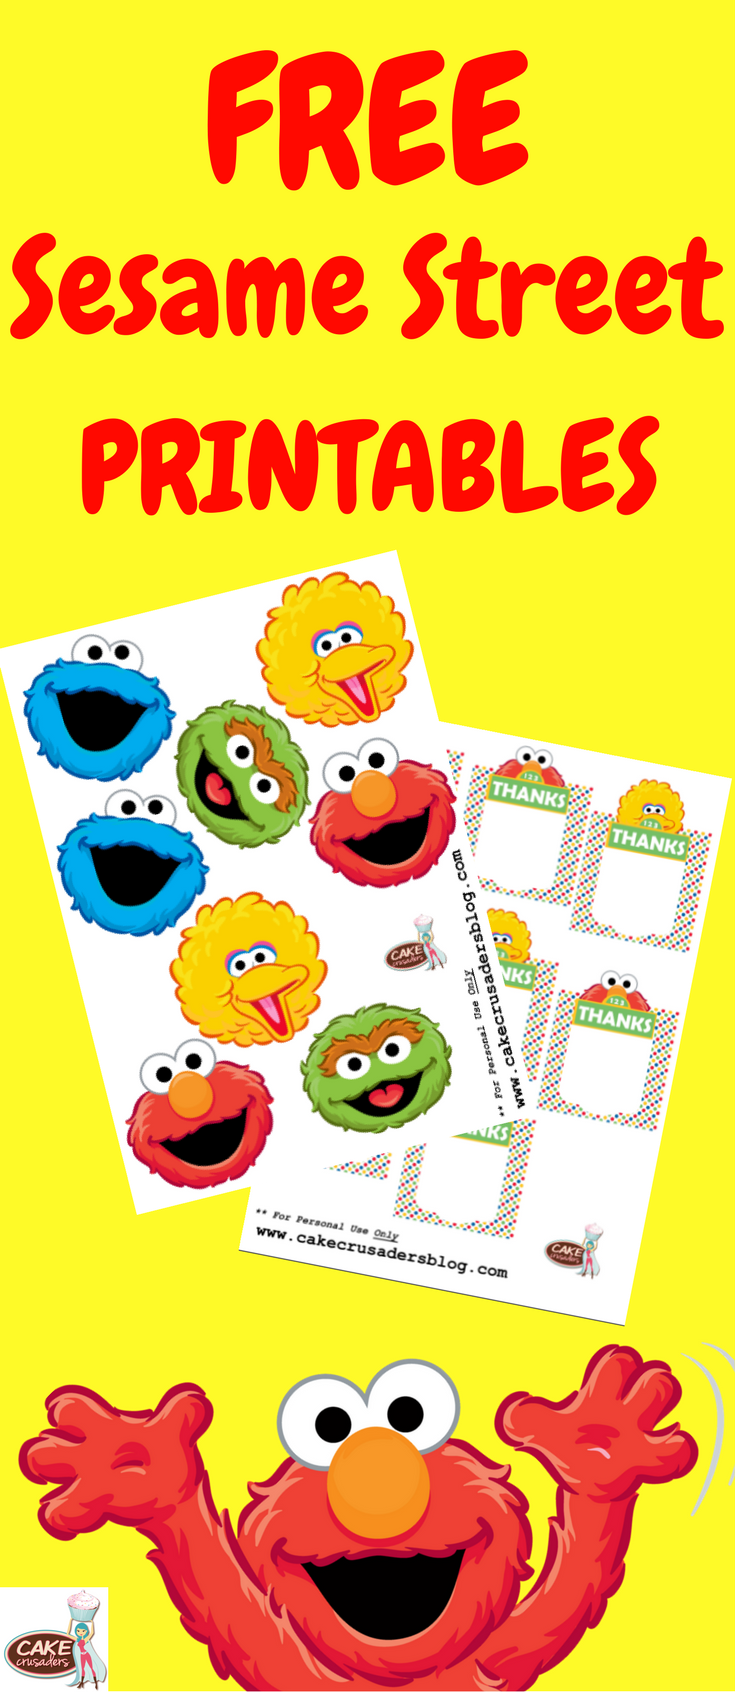 DIY Sesame Street Party Favour Favor Decorations Free Printables Included With Tutorial